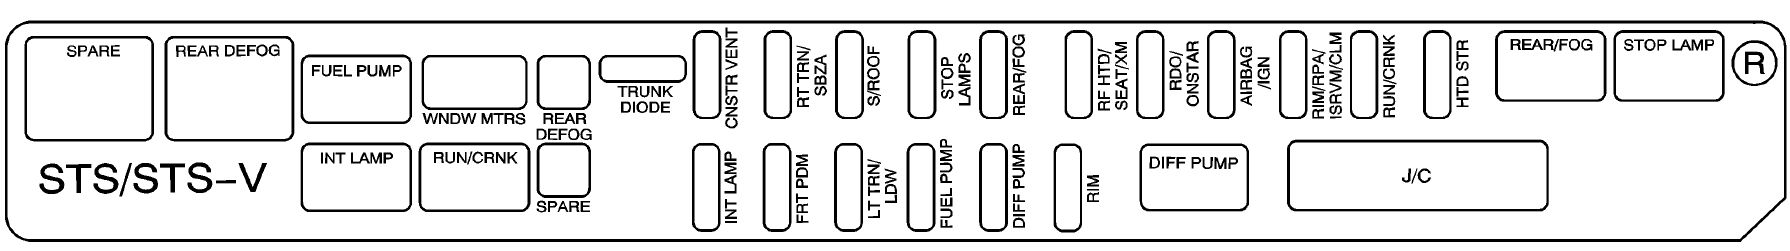 Cadillac STS mk2 fuse box rear compartment passengers side 2008 cadillac sts mk2 (second generation; 2008 2009) fuse box 2006 cadillac sts fuse box diagram at gsmx.co